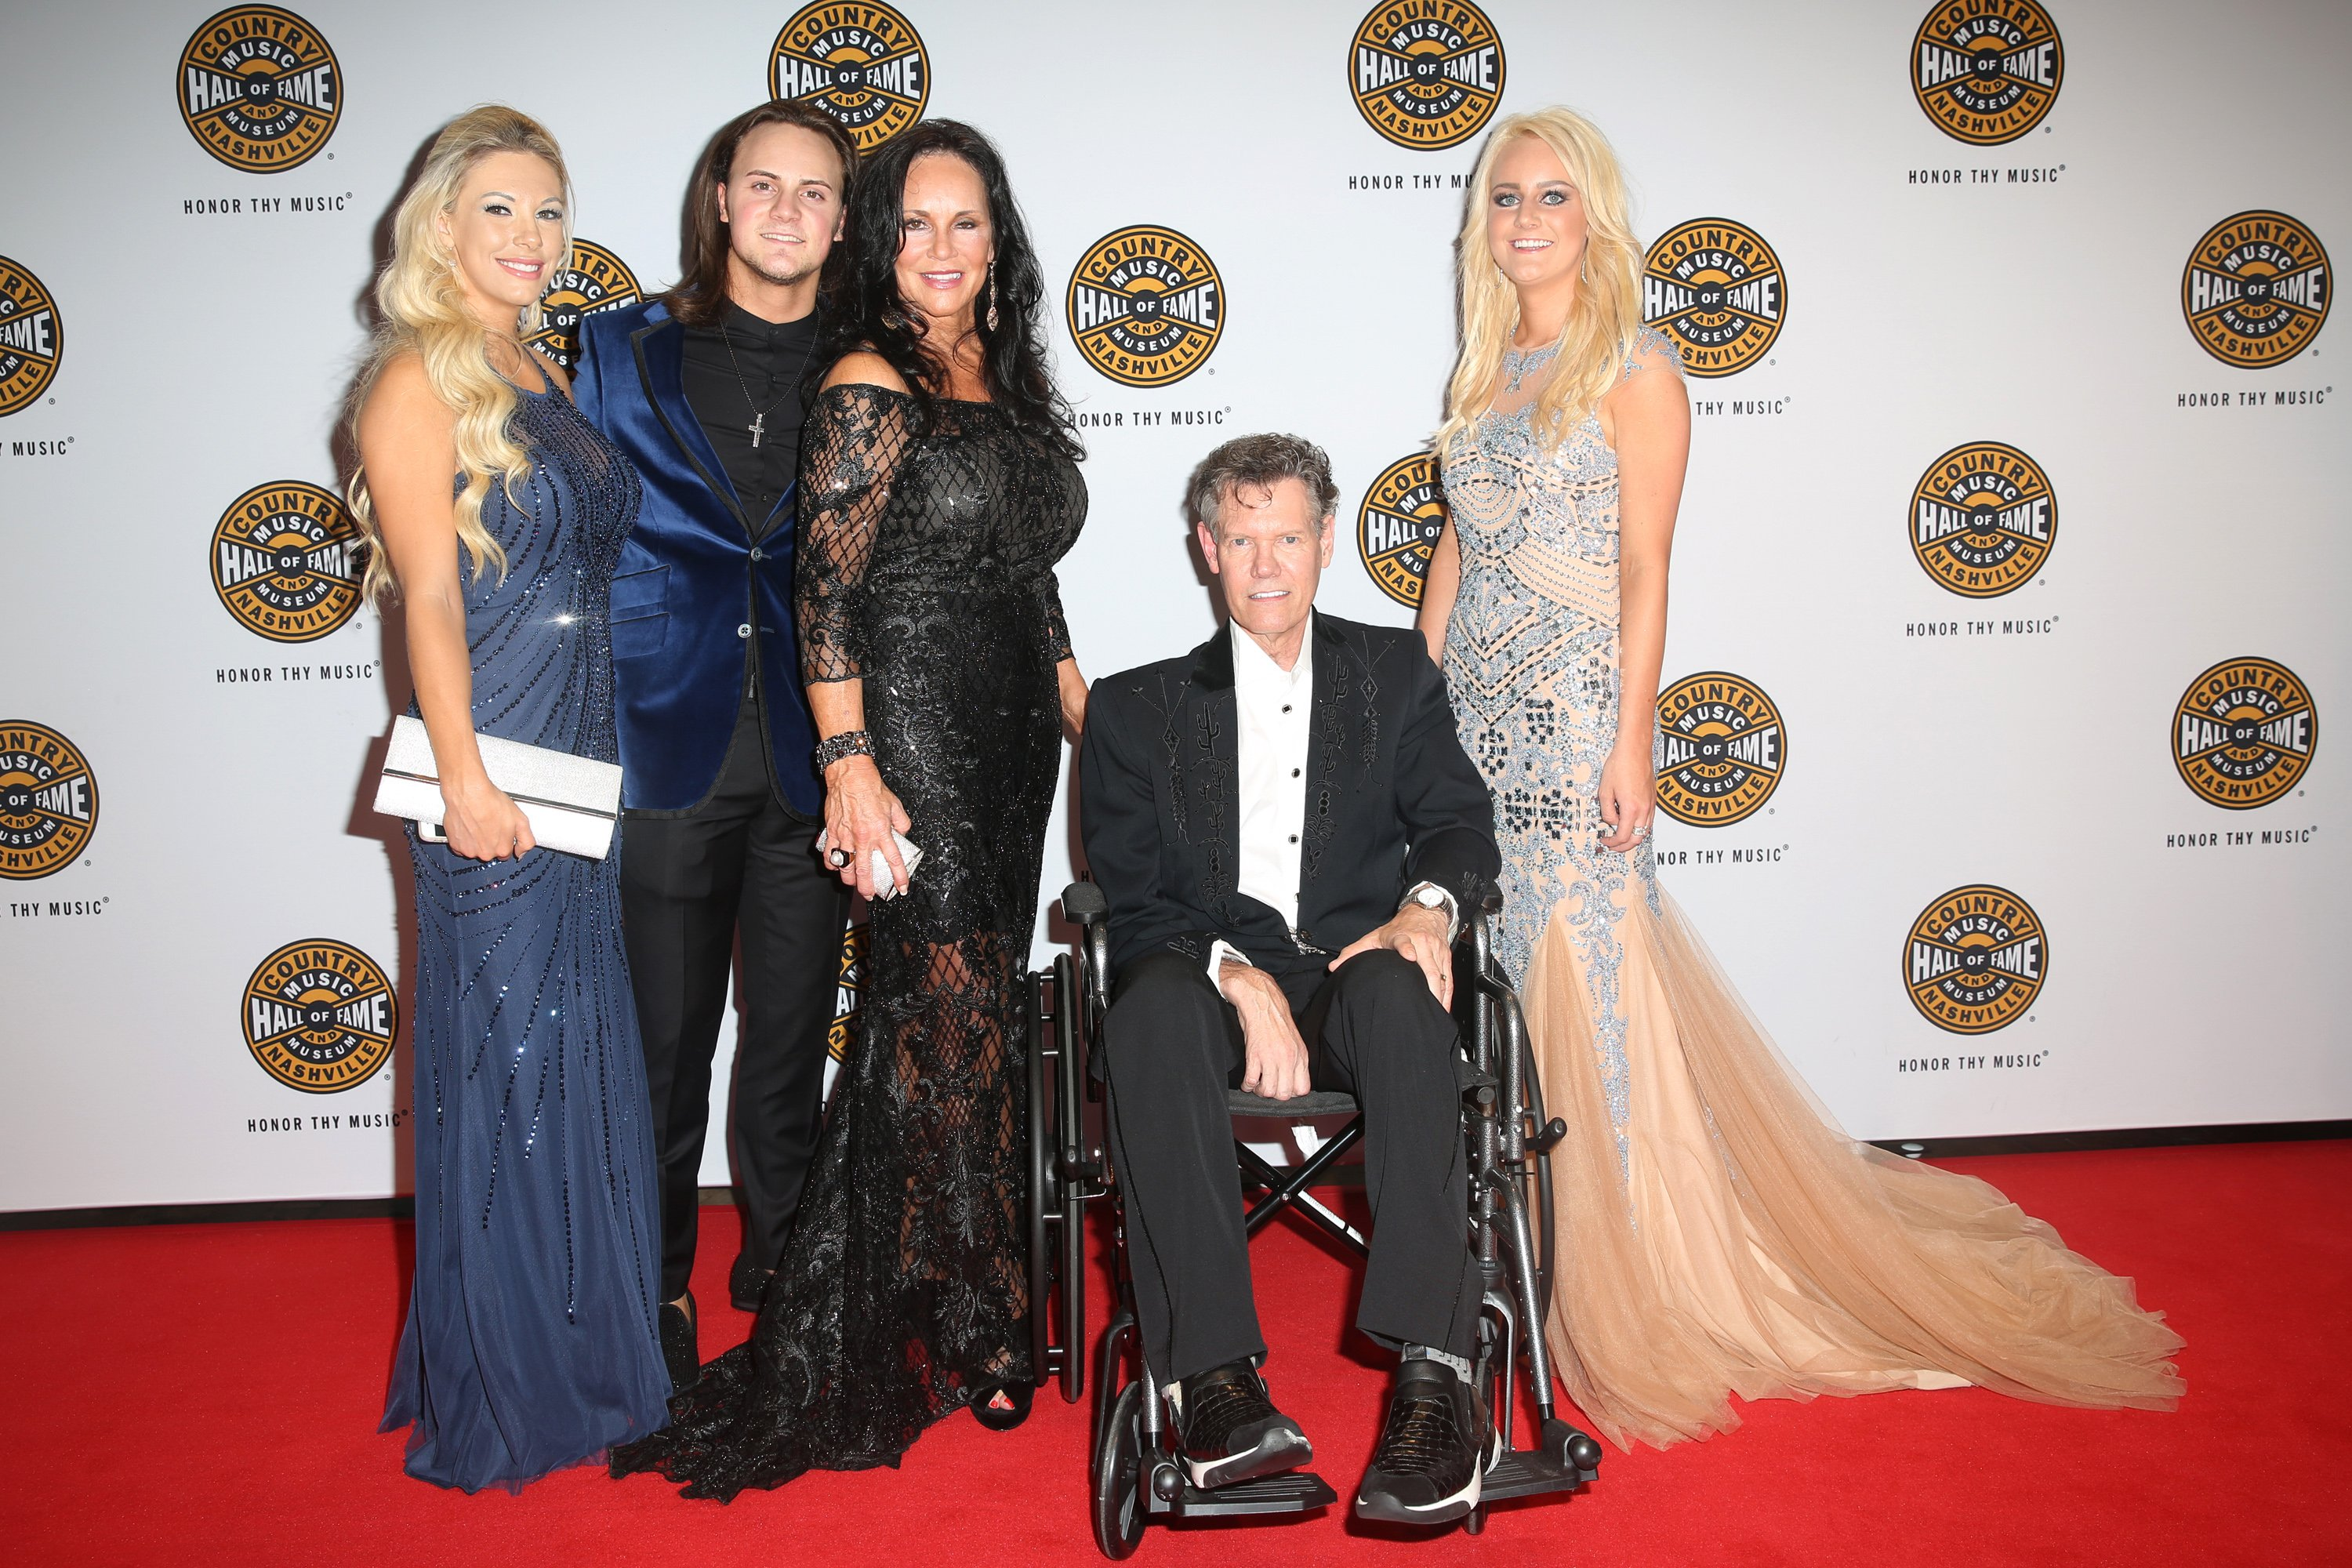 Randy Travis stuns crowd, sings at Hall of Fame induction